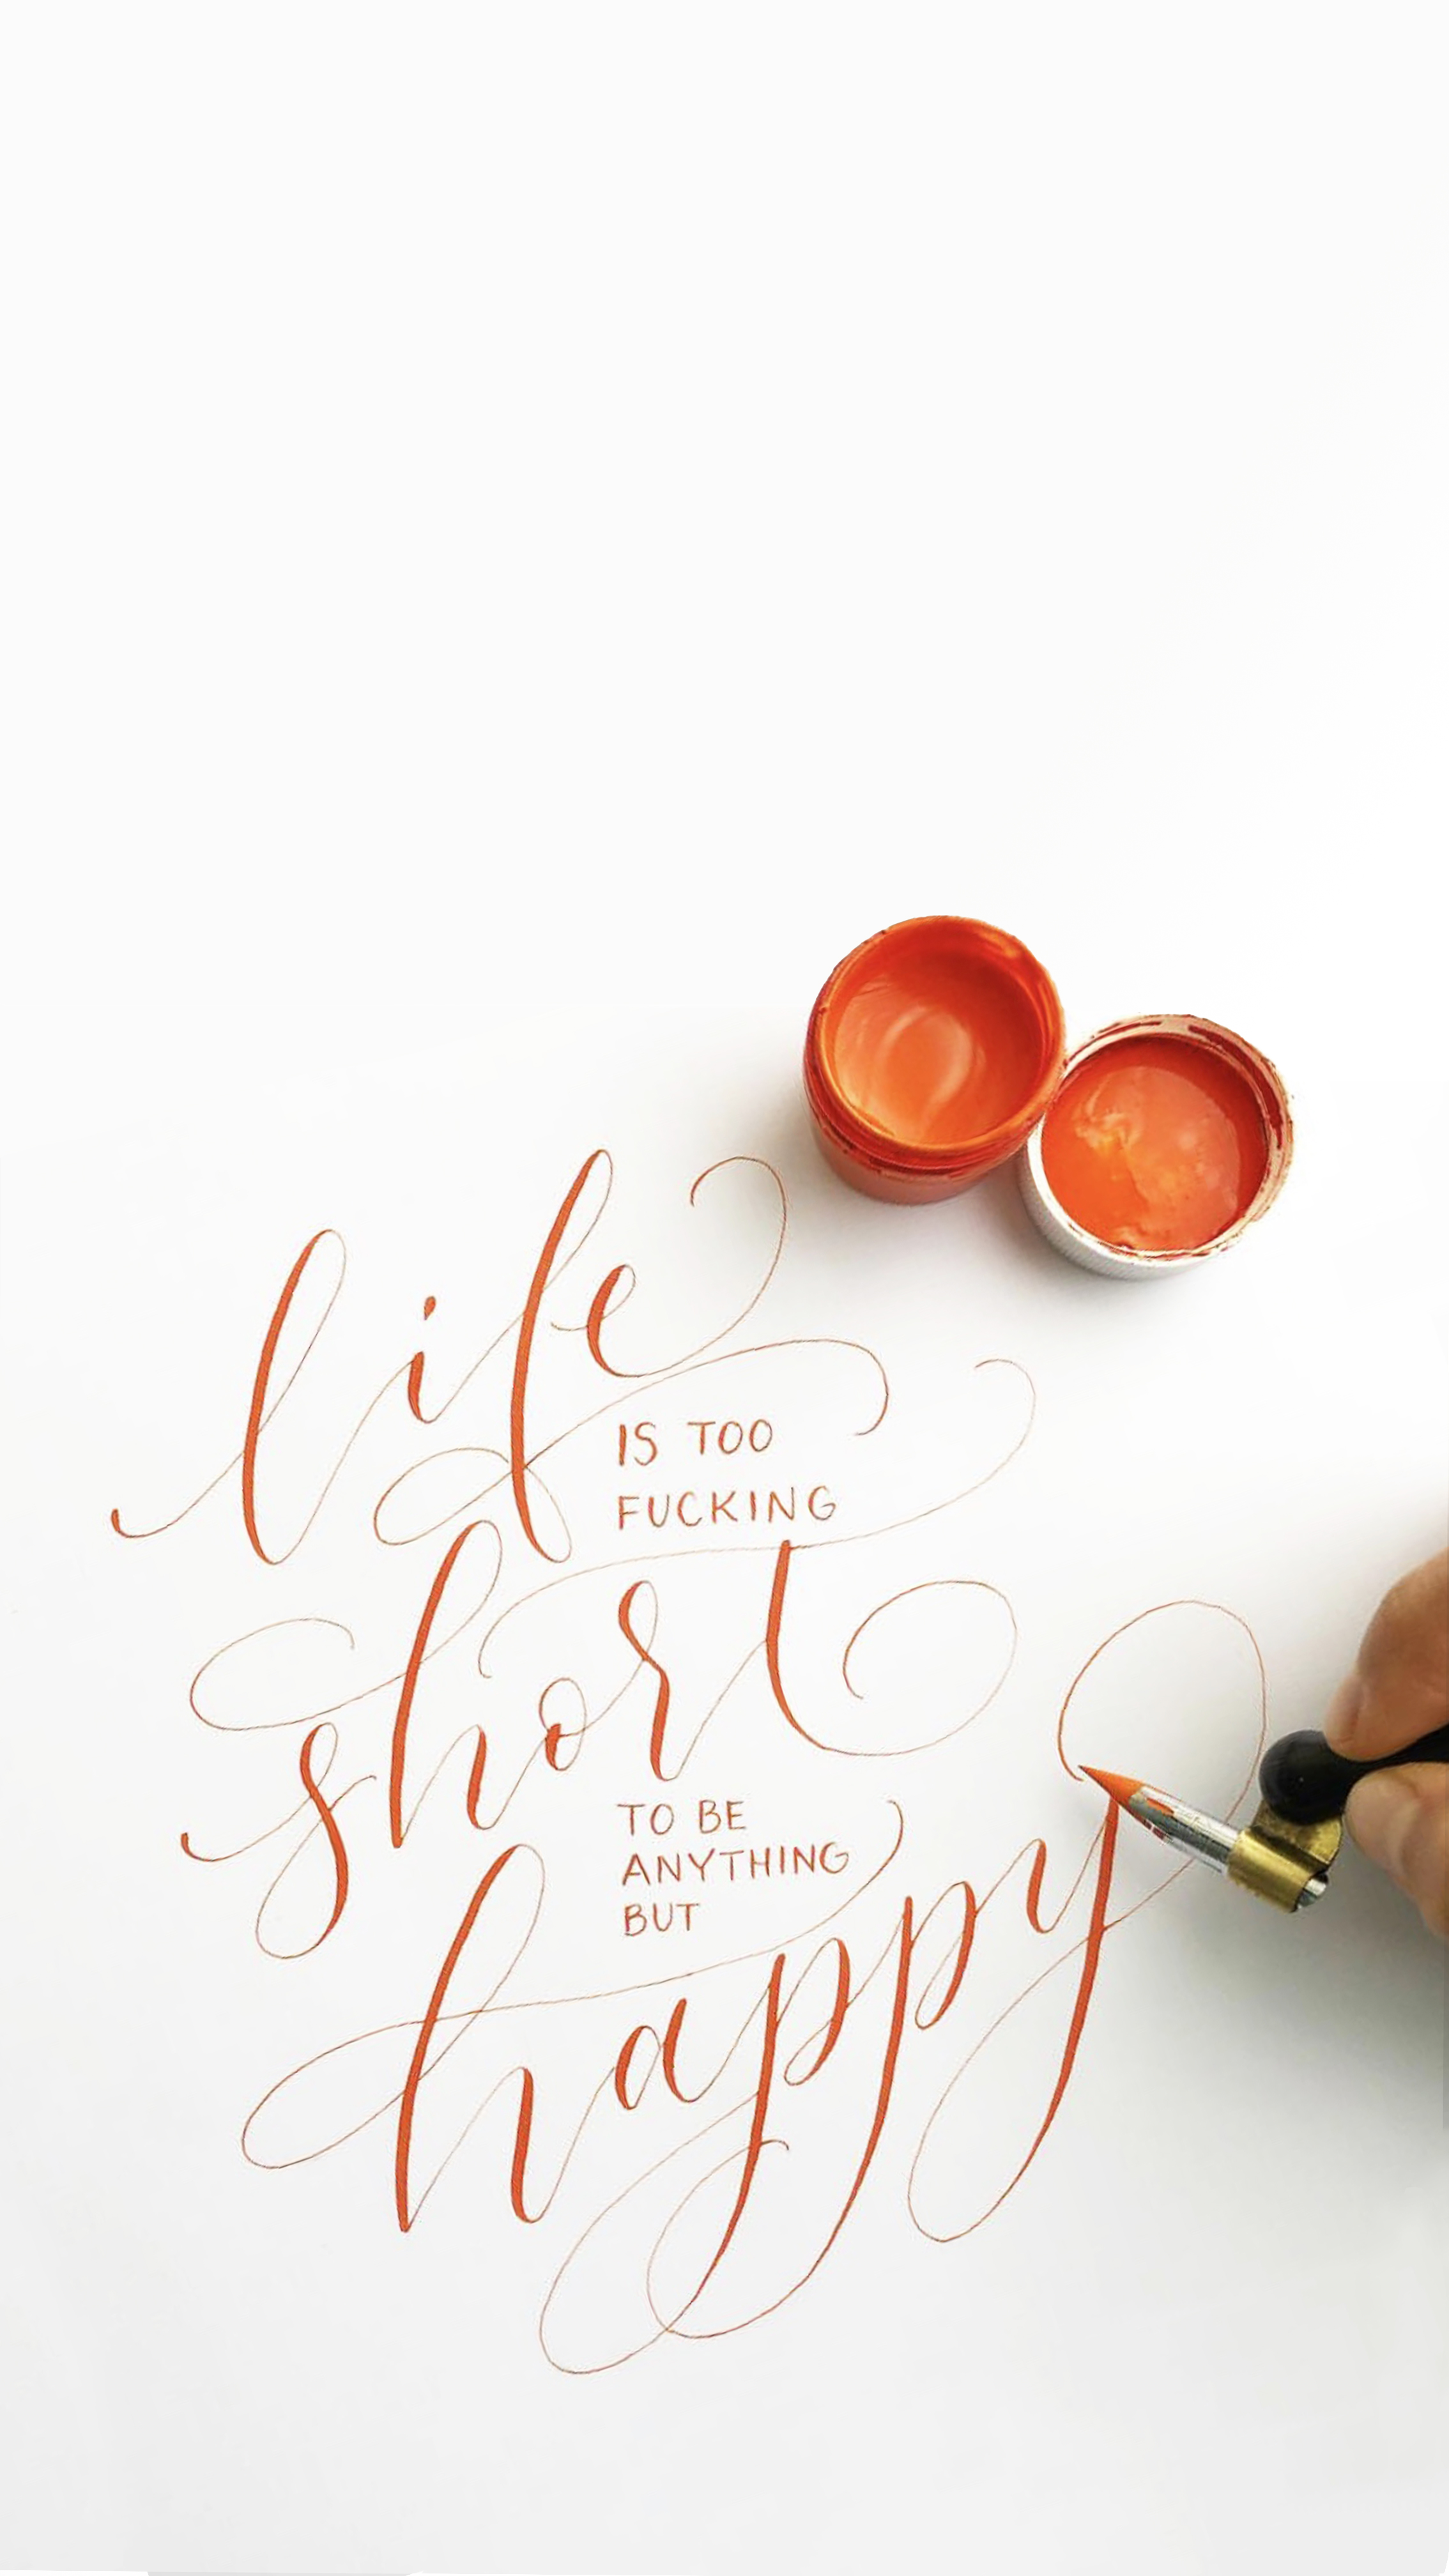 Mobile-Calligraphy-Wallpapers-(Life-is-too-short).jpg